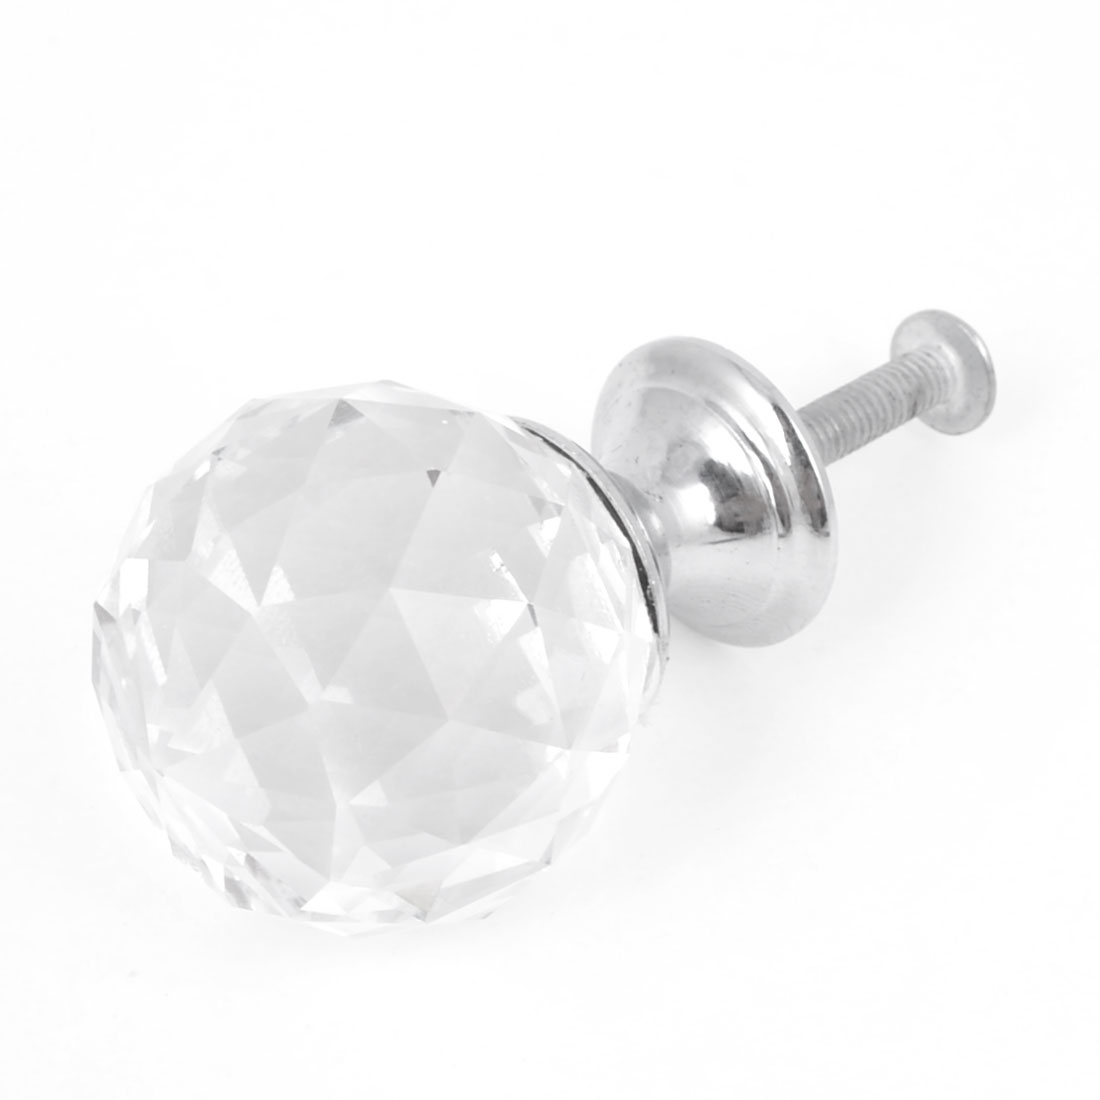 Drawer Dresser Silver Tone Base 3cm Diameter Clear Plastic Faceted Faux Crystal Top Pull Knob Handle